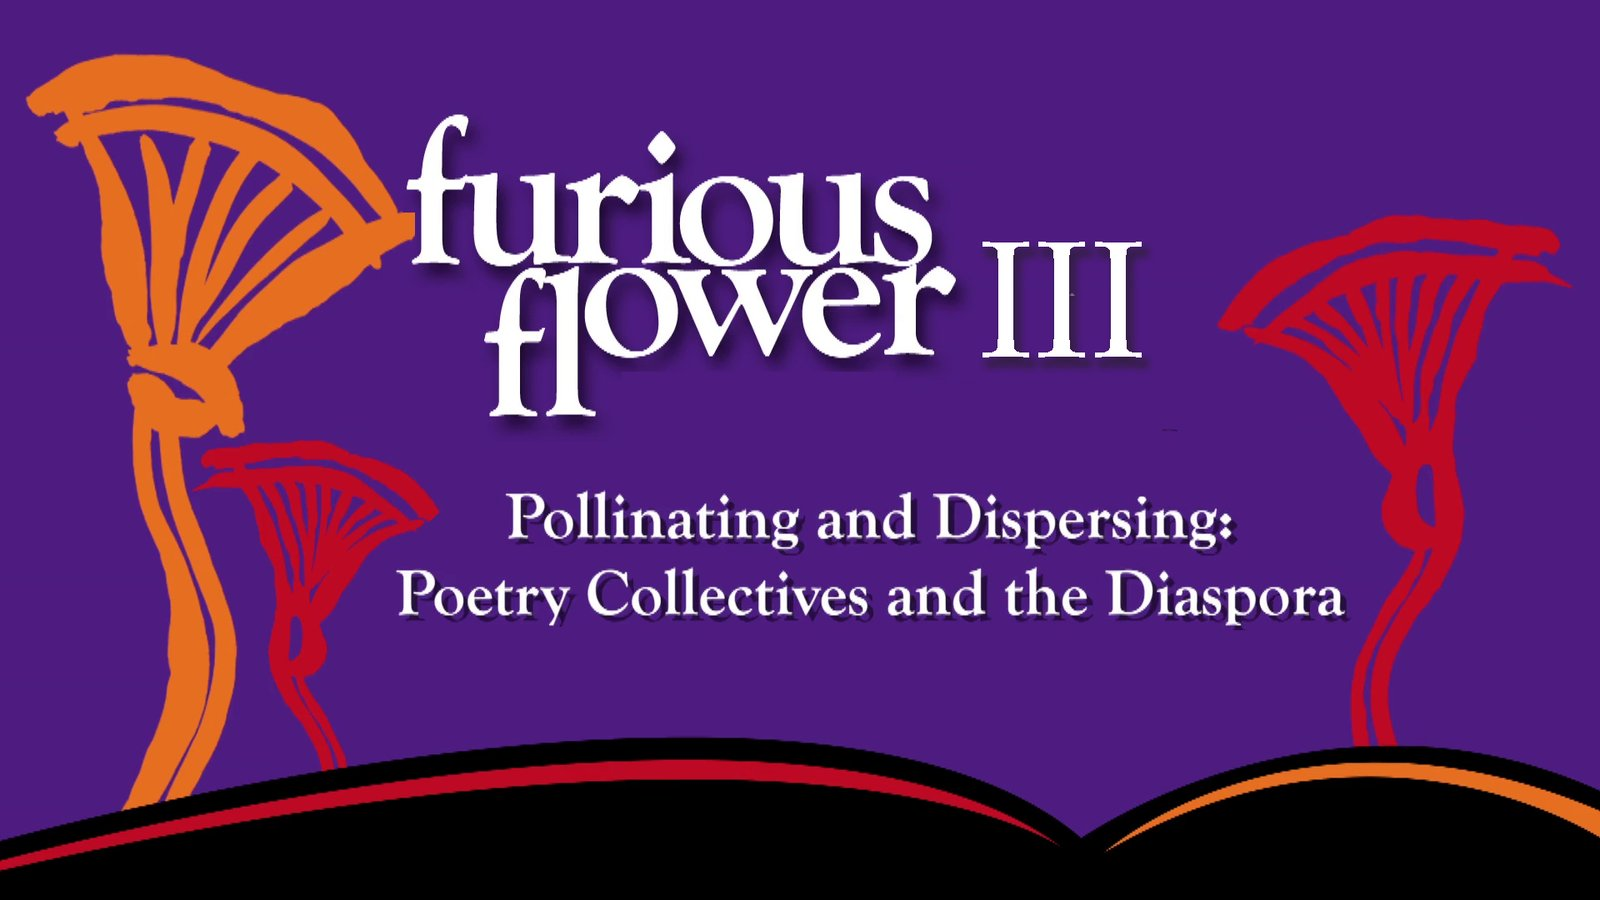 Pollinating and Dispersing - Black Poetry Collectives and the Diaspora